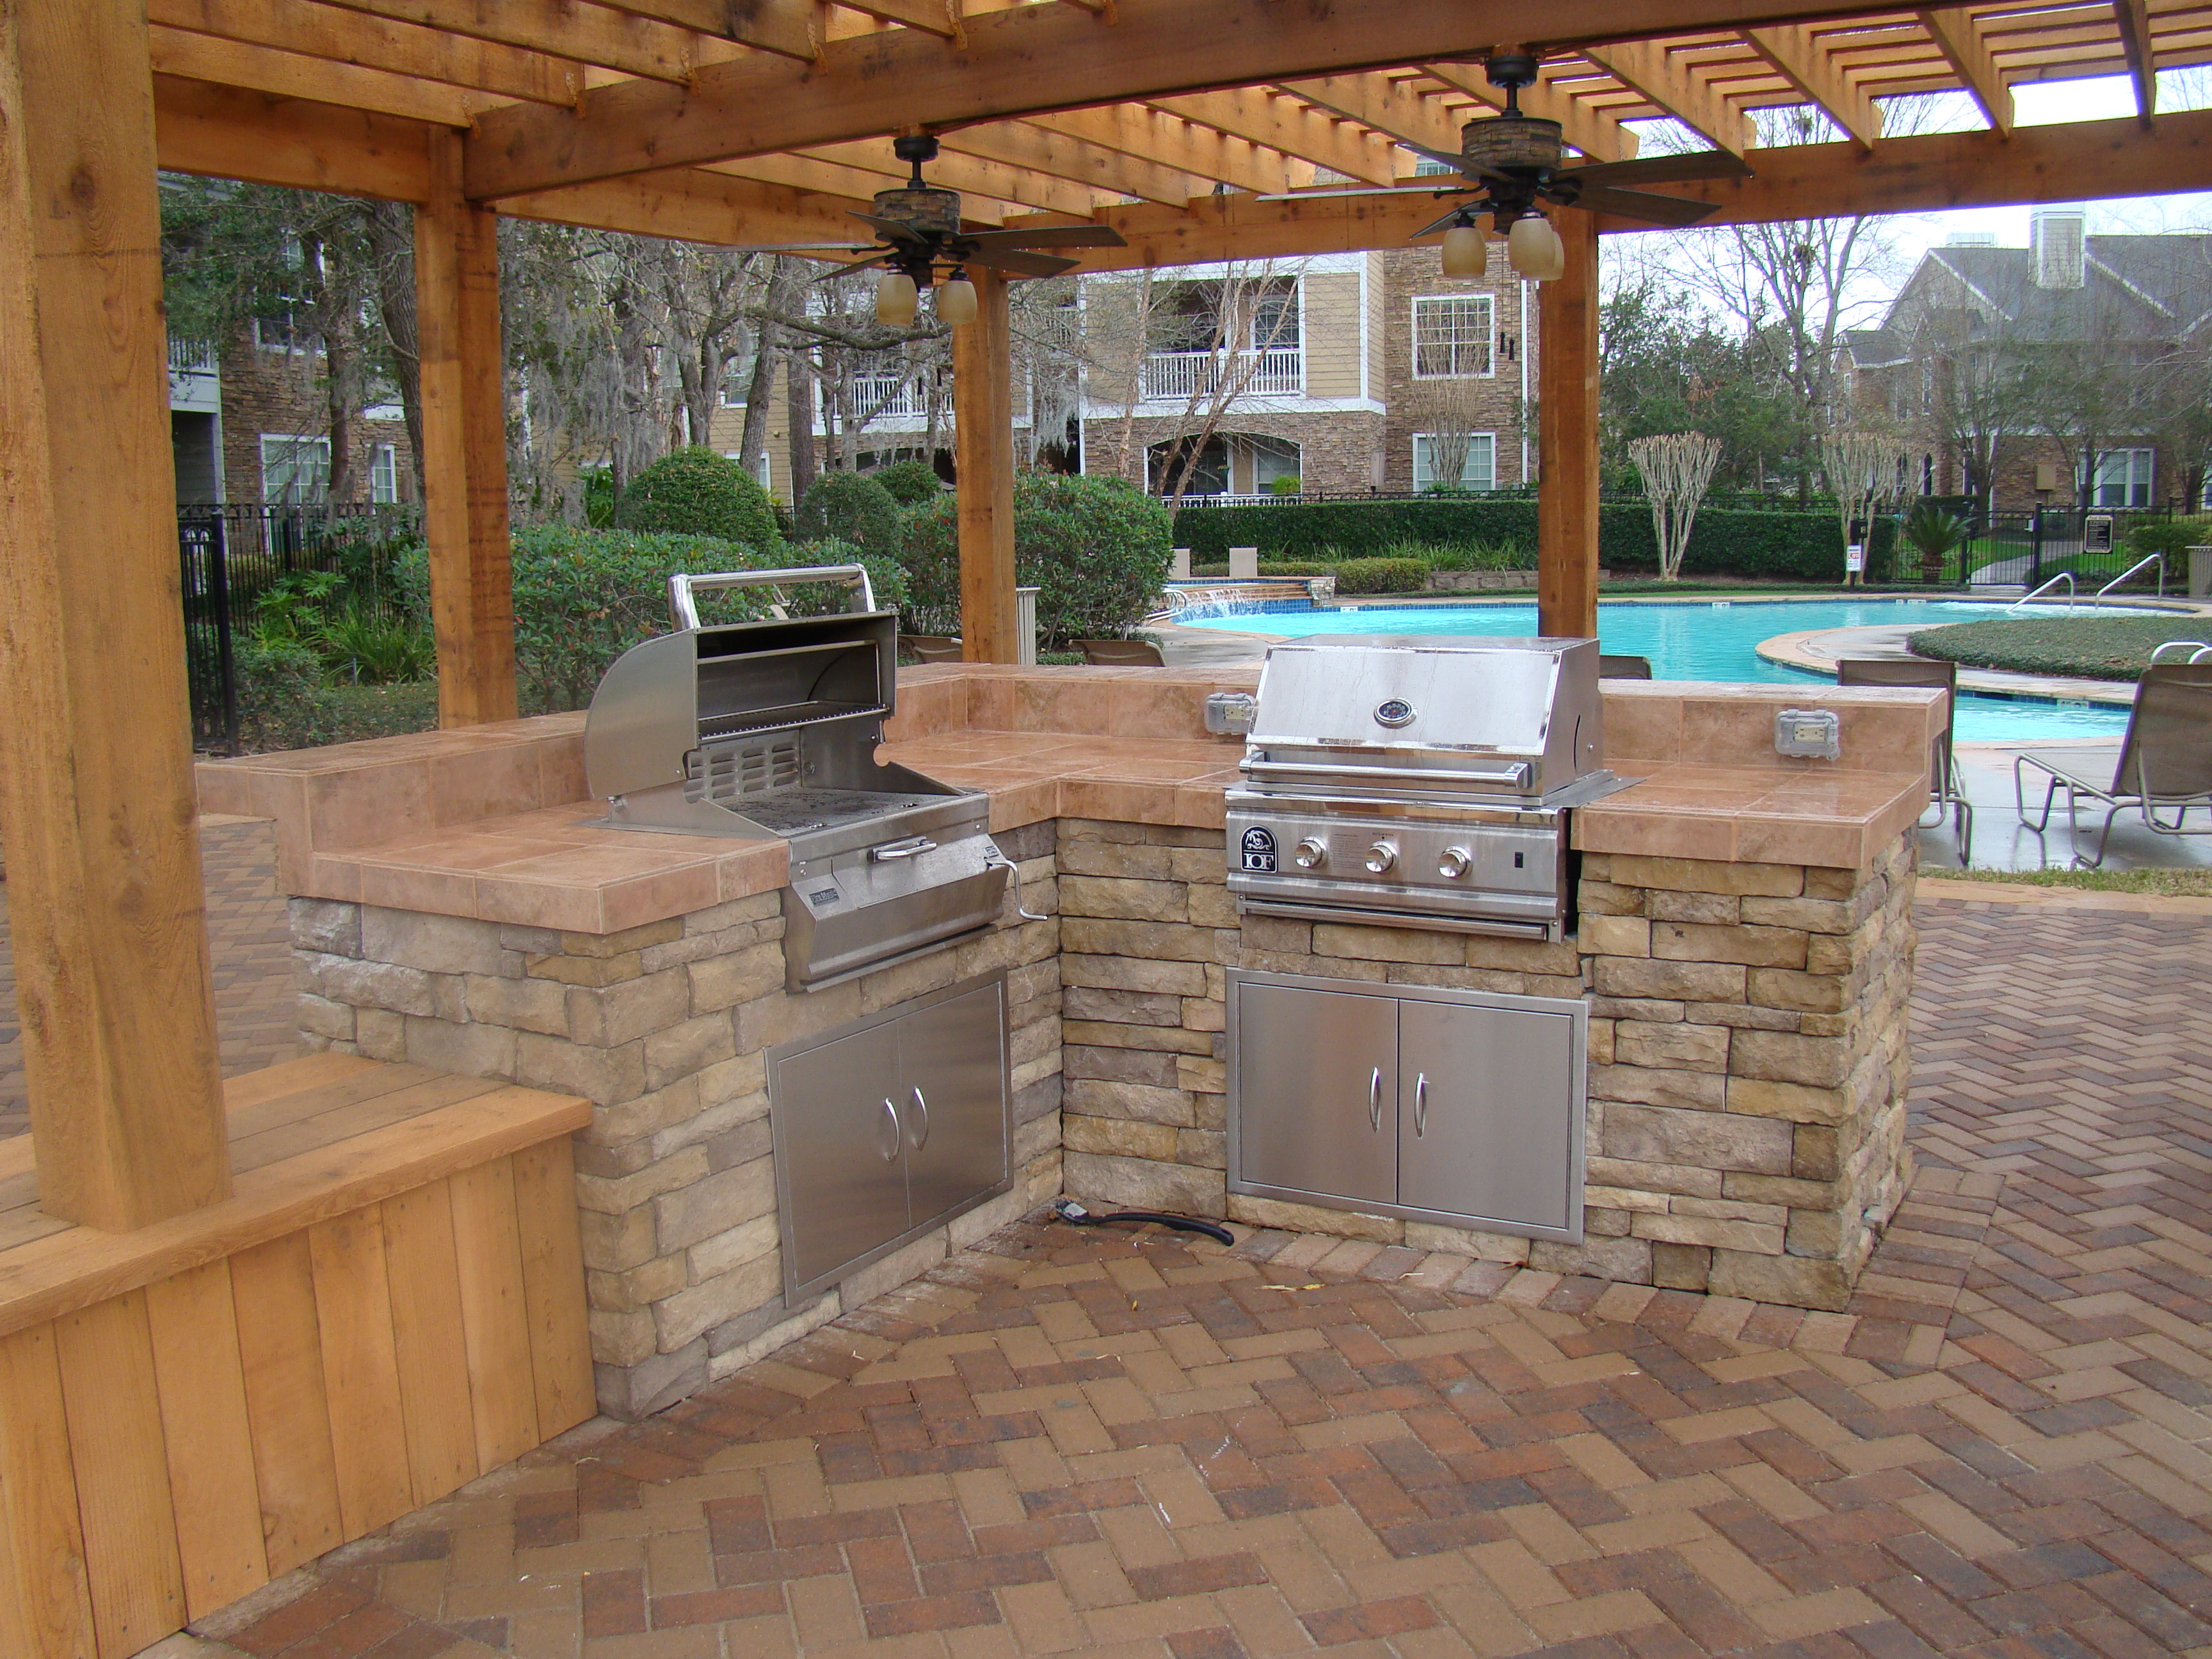 outdoor kitchen pictures photo - 2